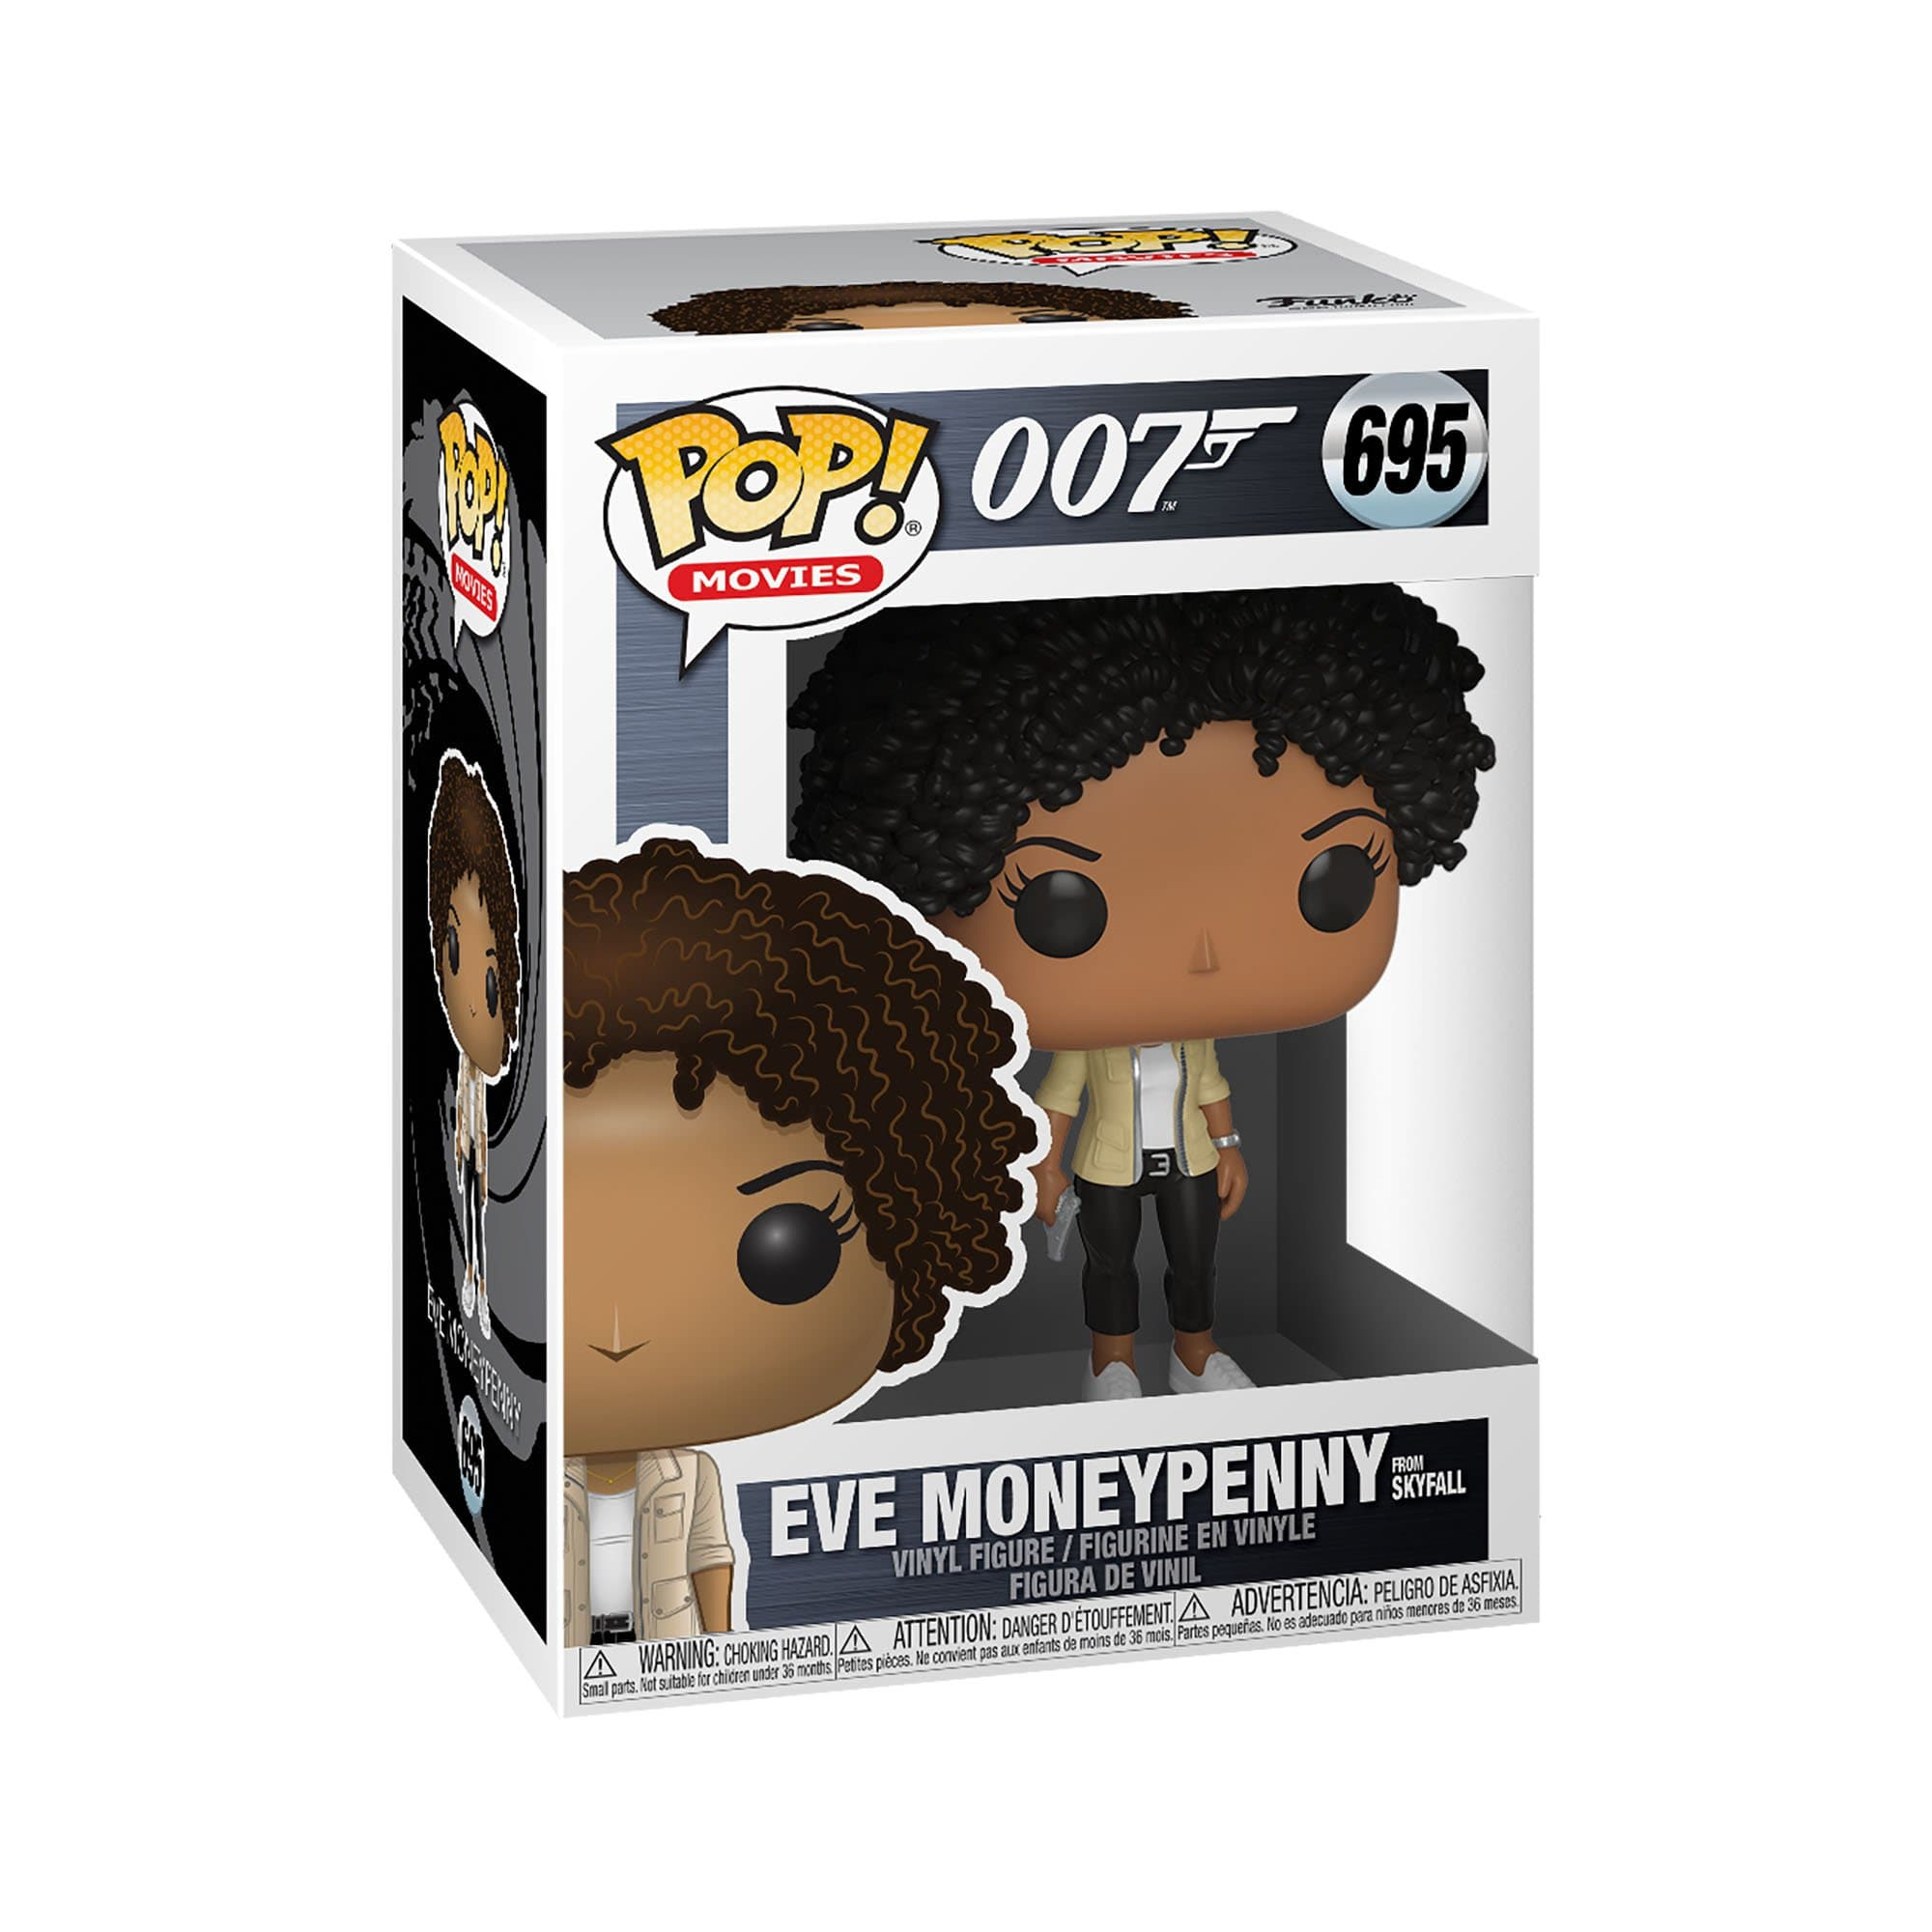 Moneypenny Pop! Figure - Skyfall Edition - By Funko - 007STORE